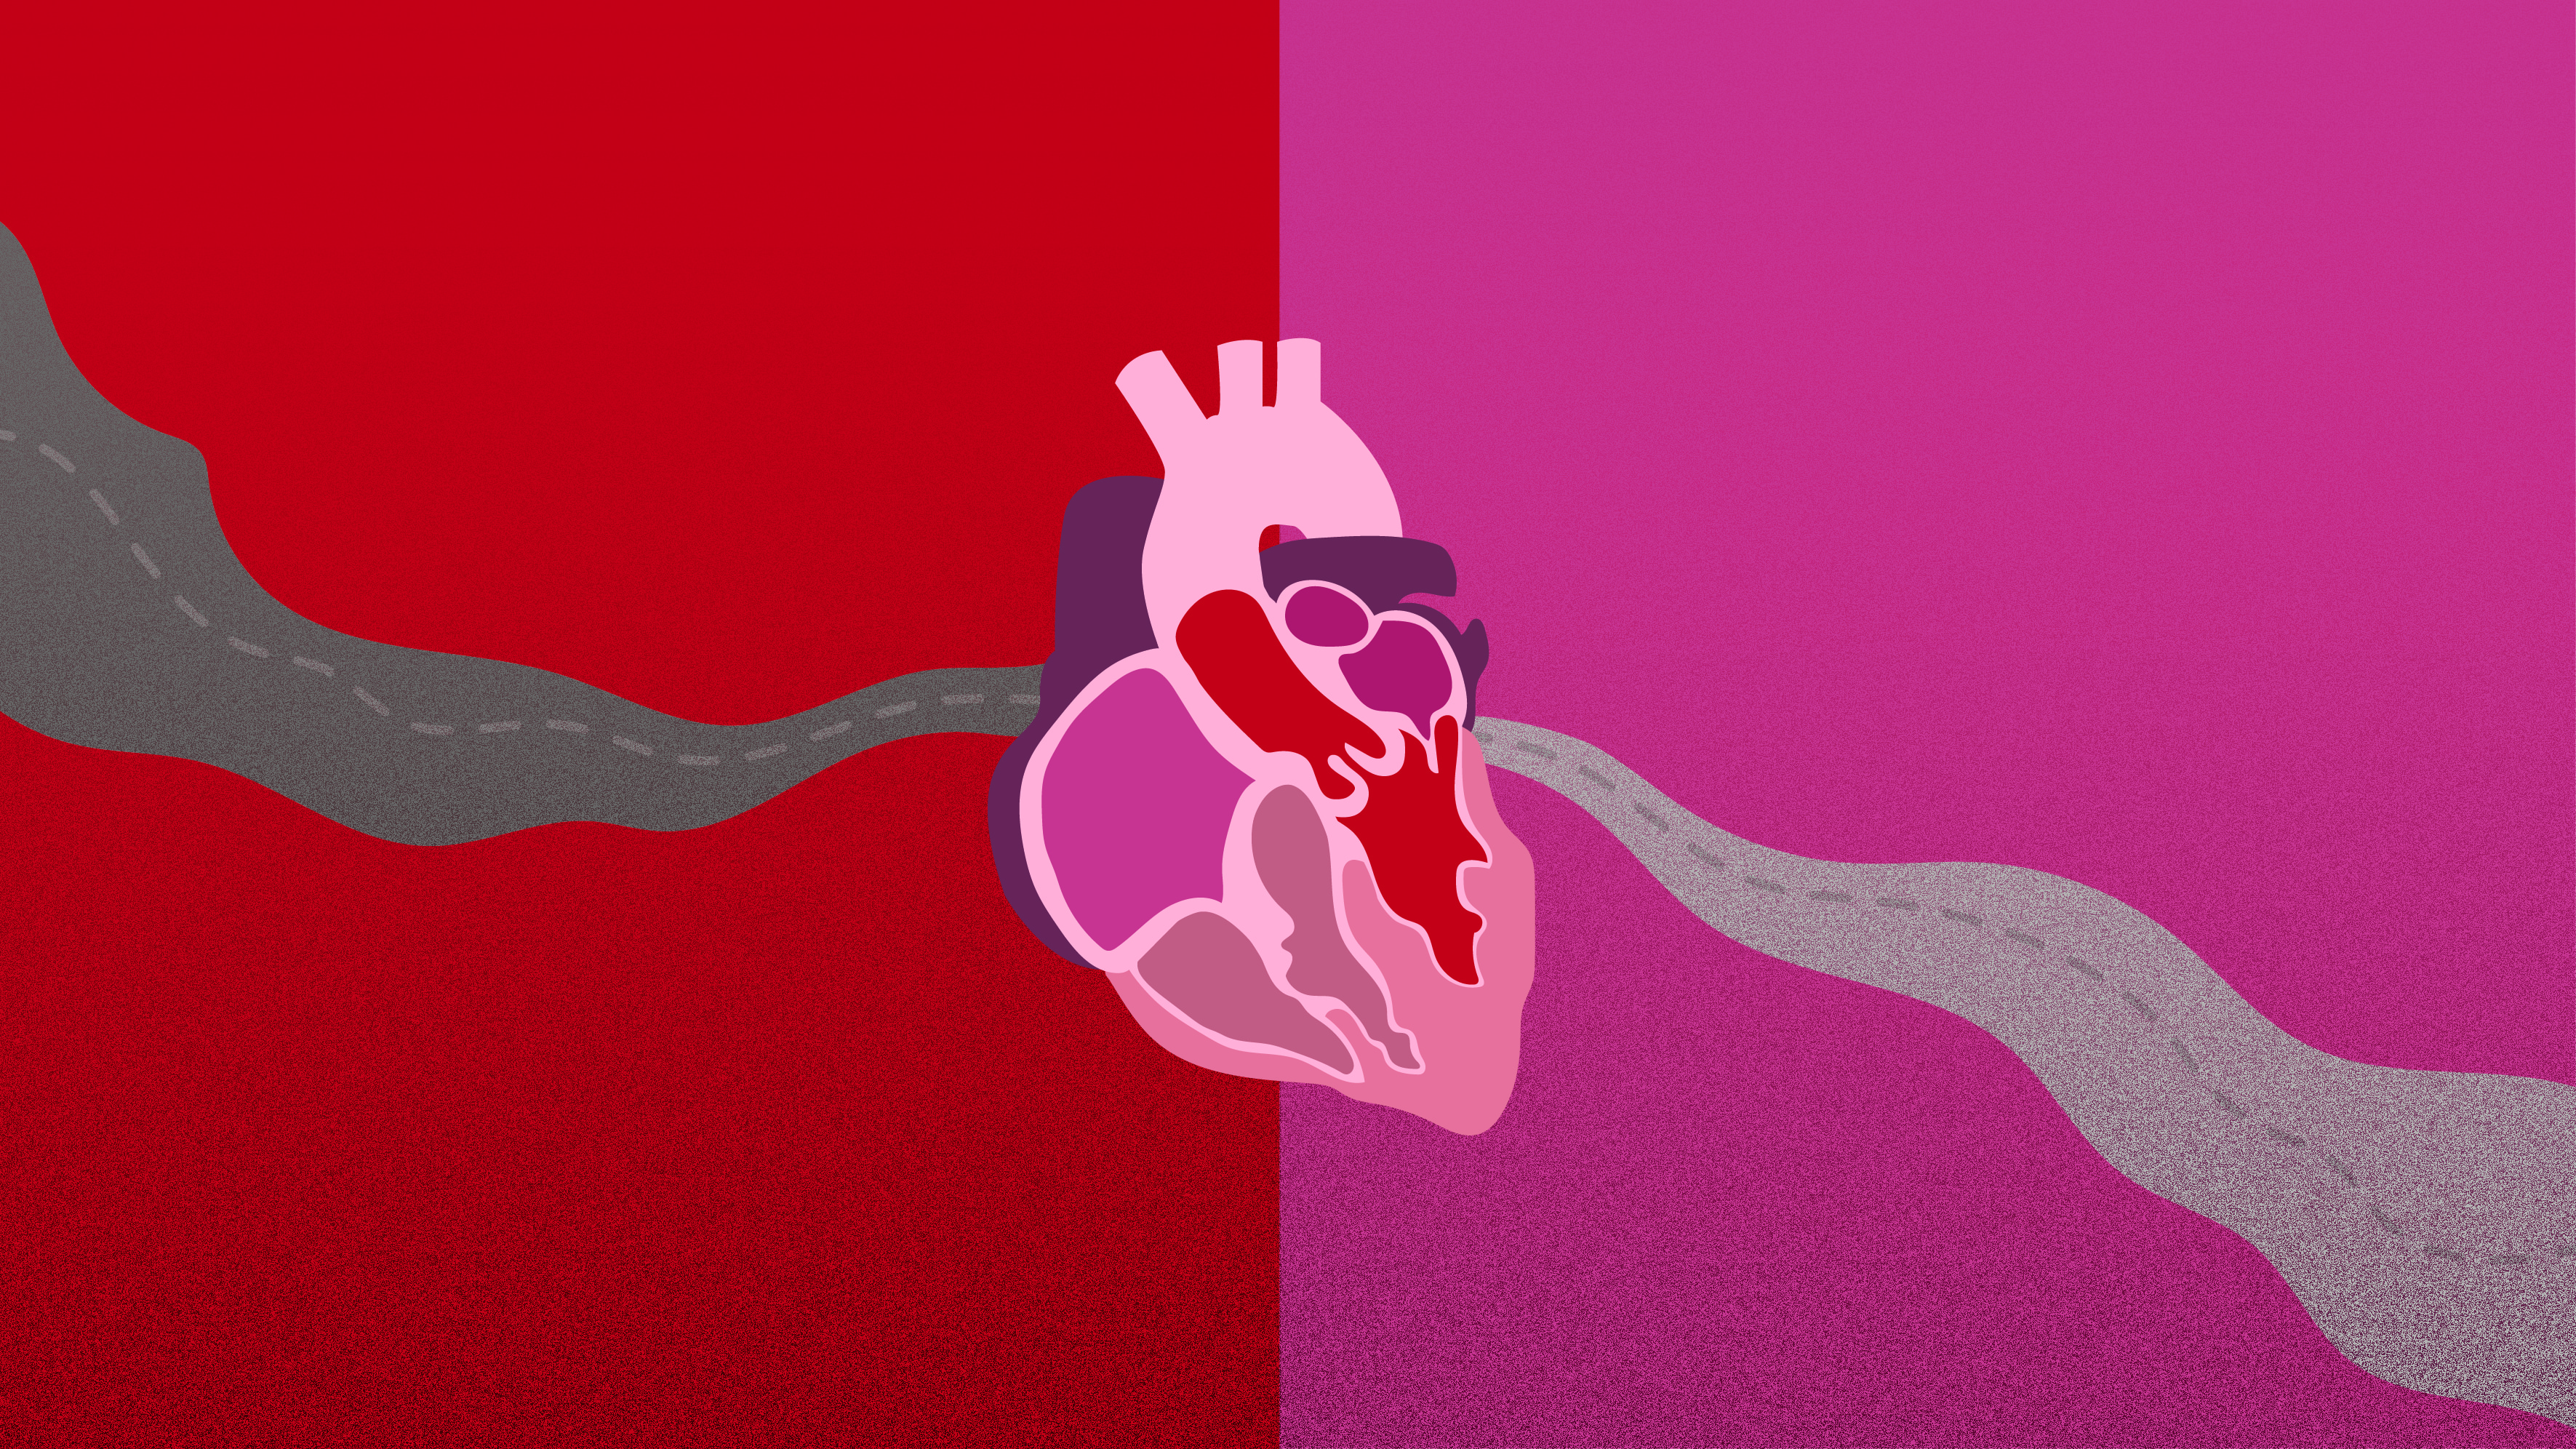 Enlarged Aorta Treatment: Observe or Operate? When Aneurysms